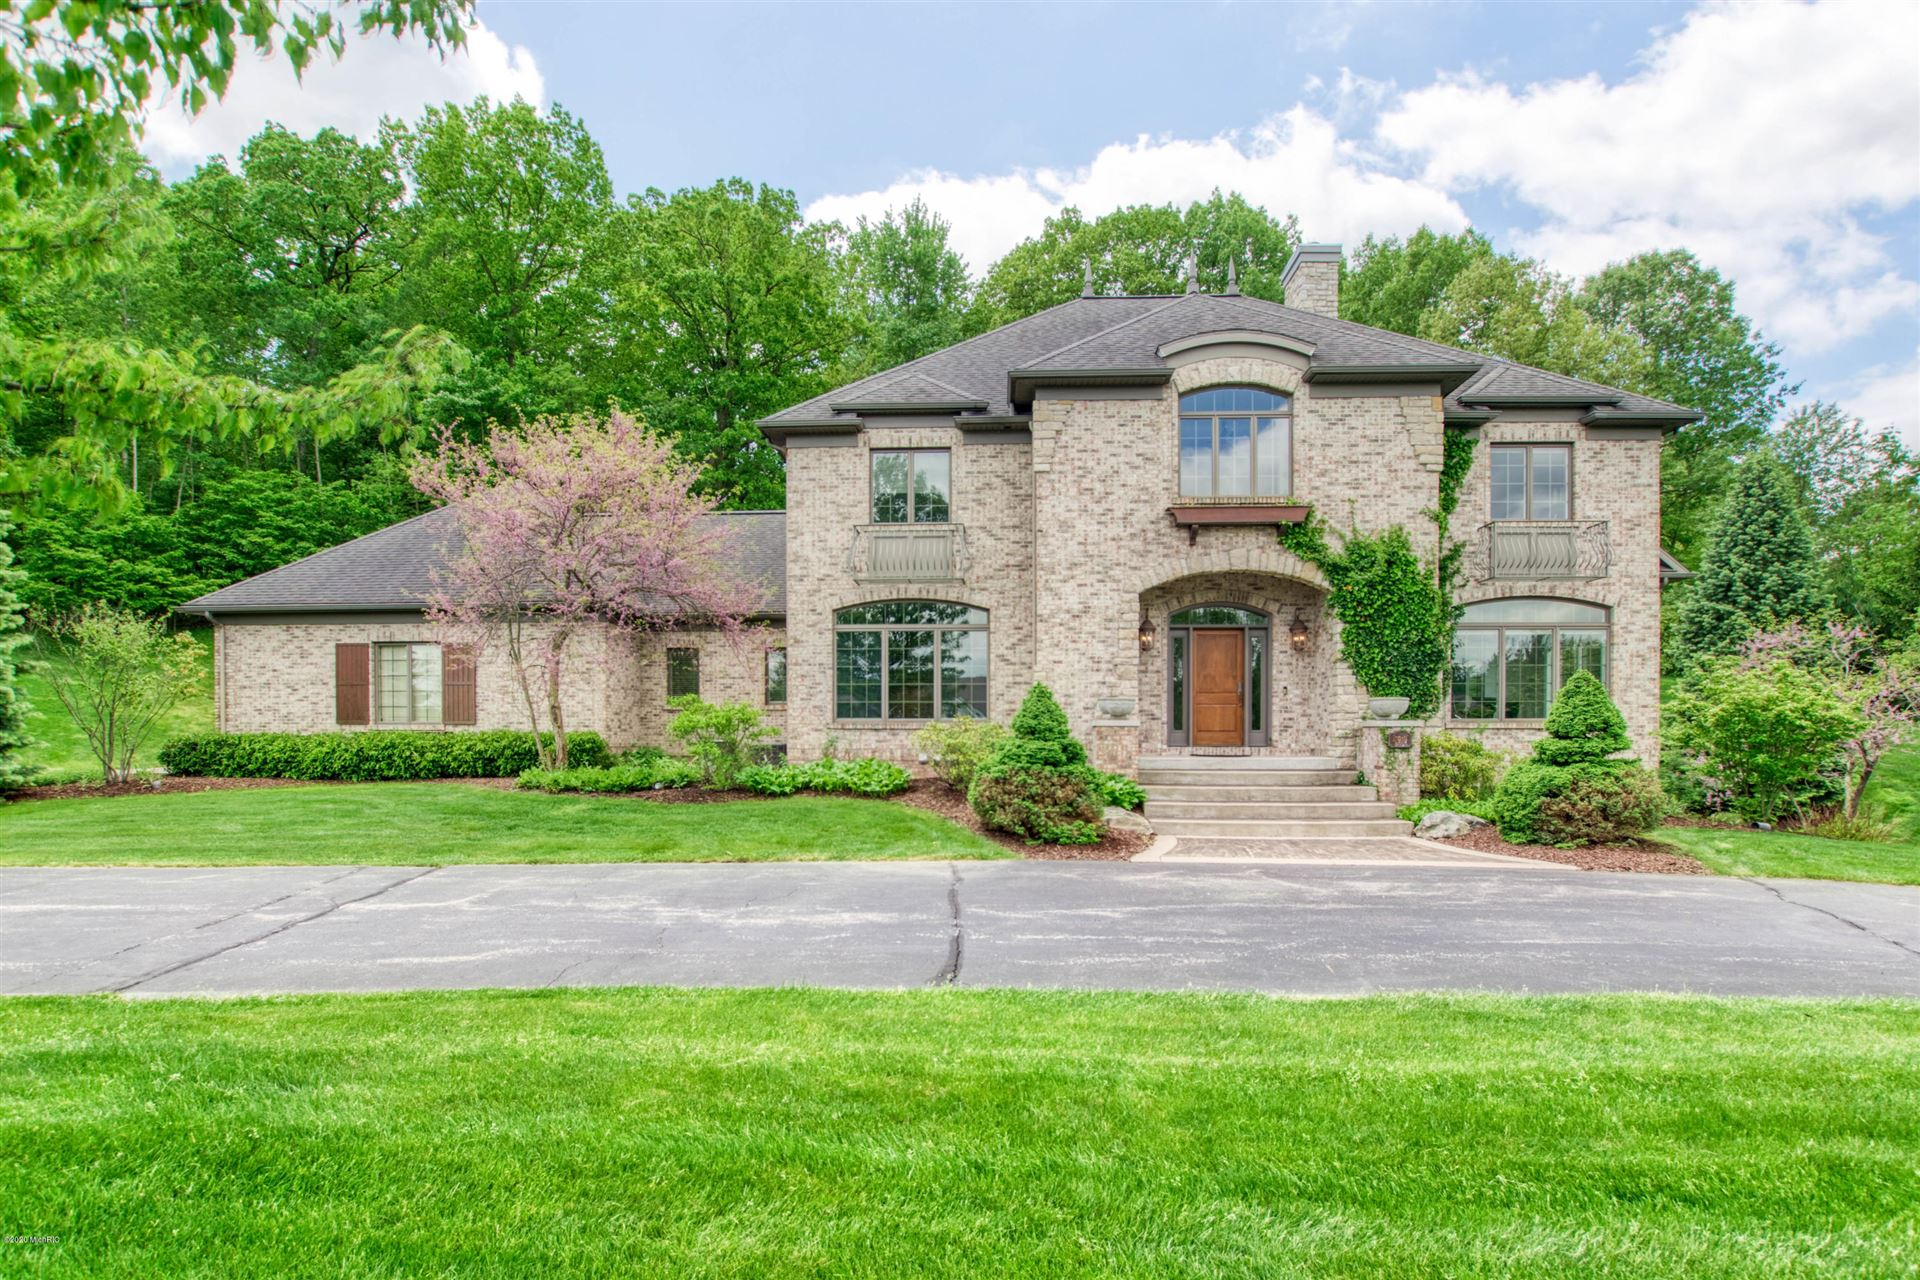 7910 Old Elm Court SE, Ada, MI 49301 - MLS#: 20009787